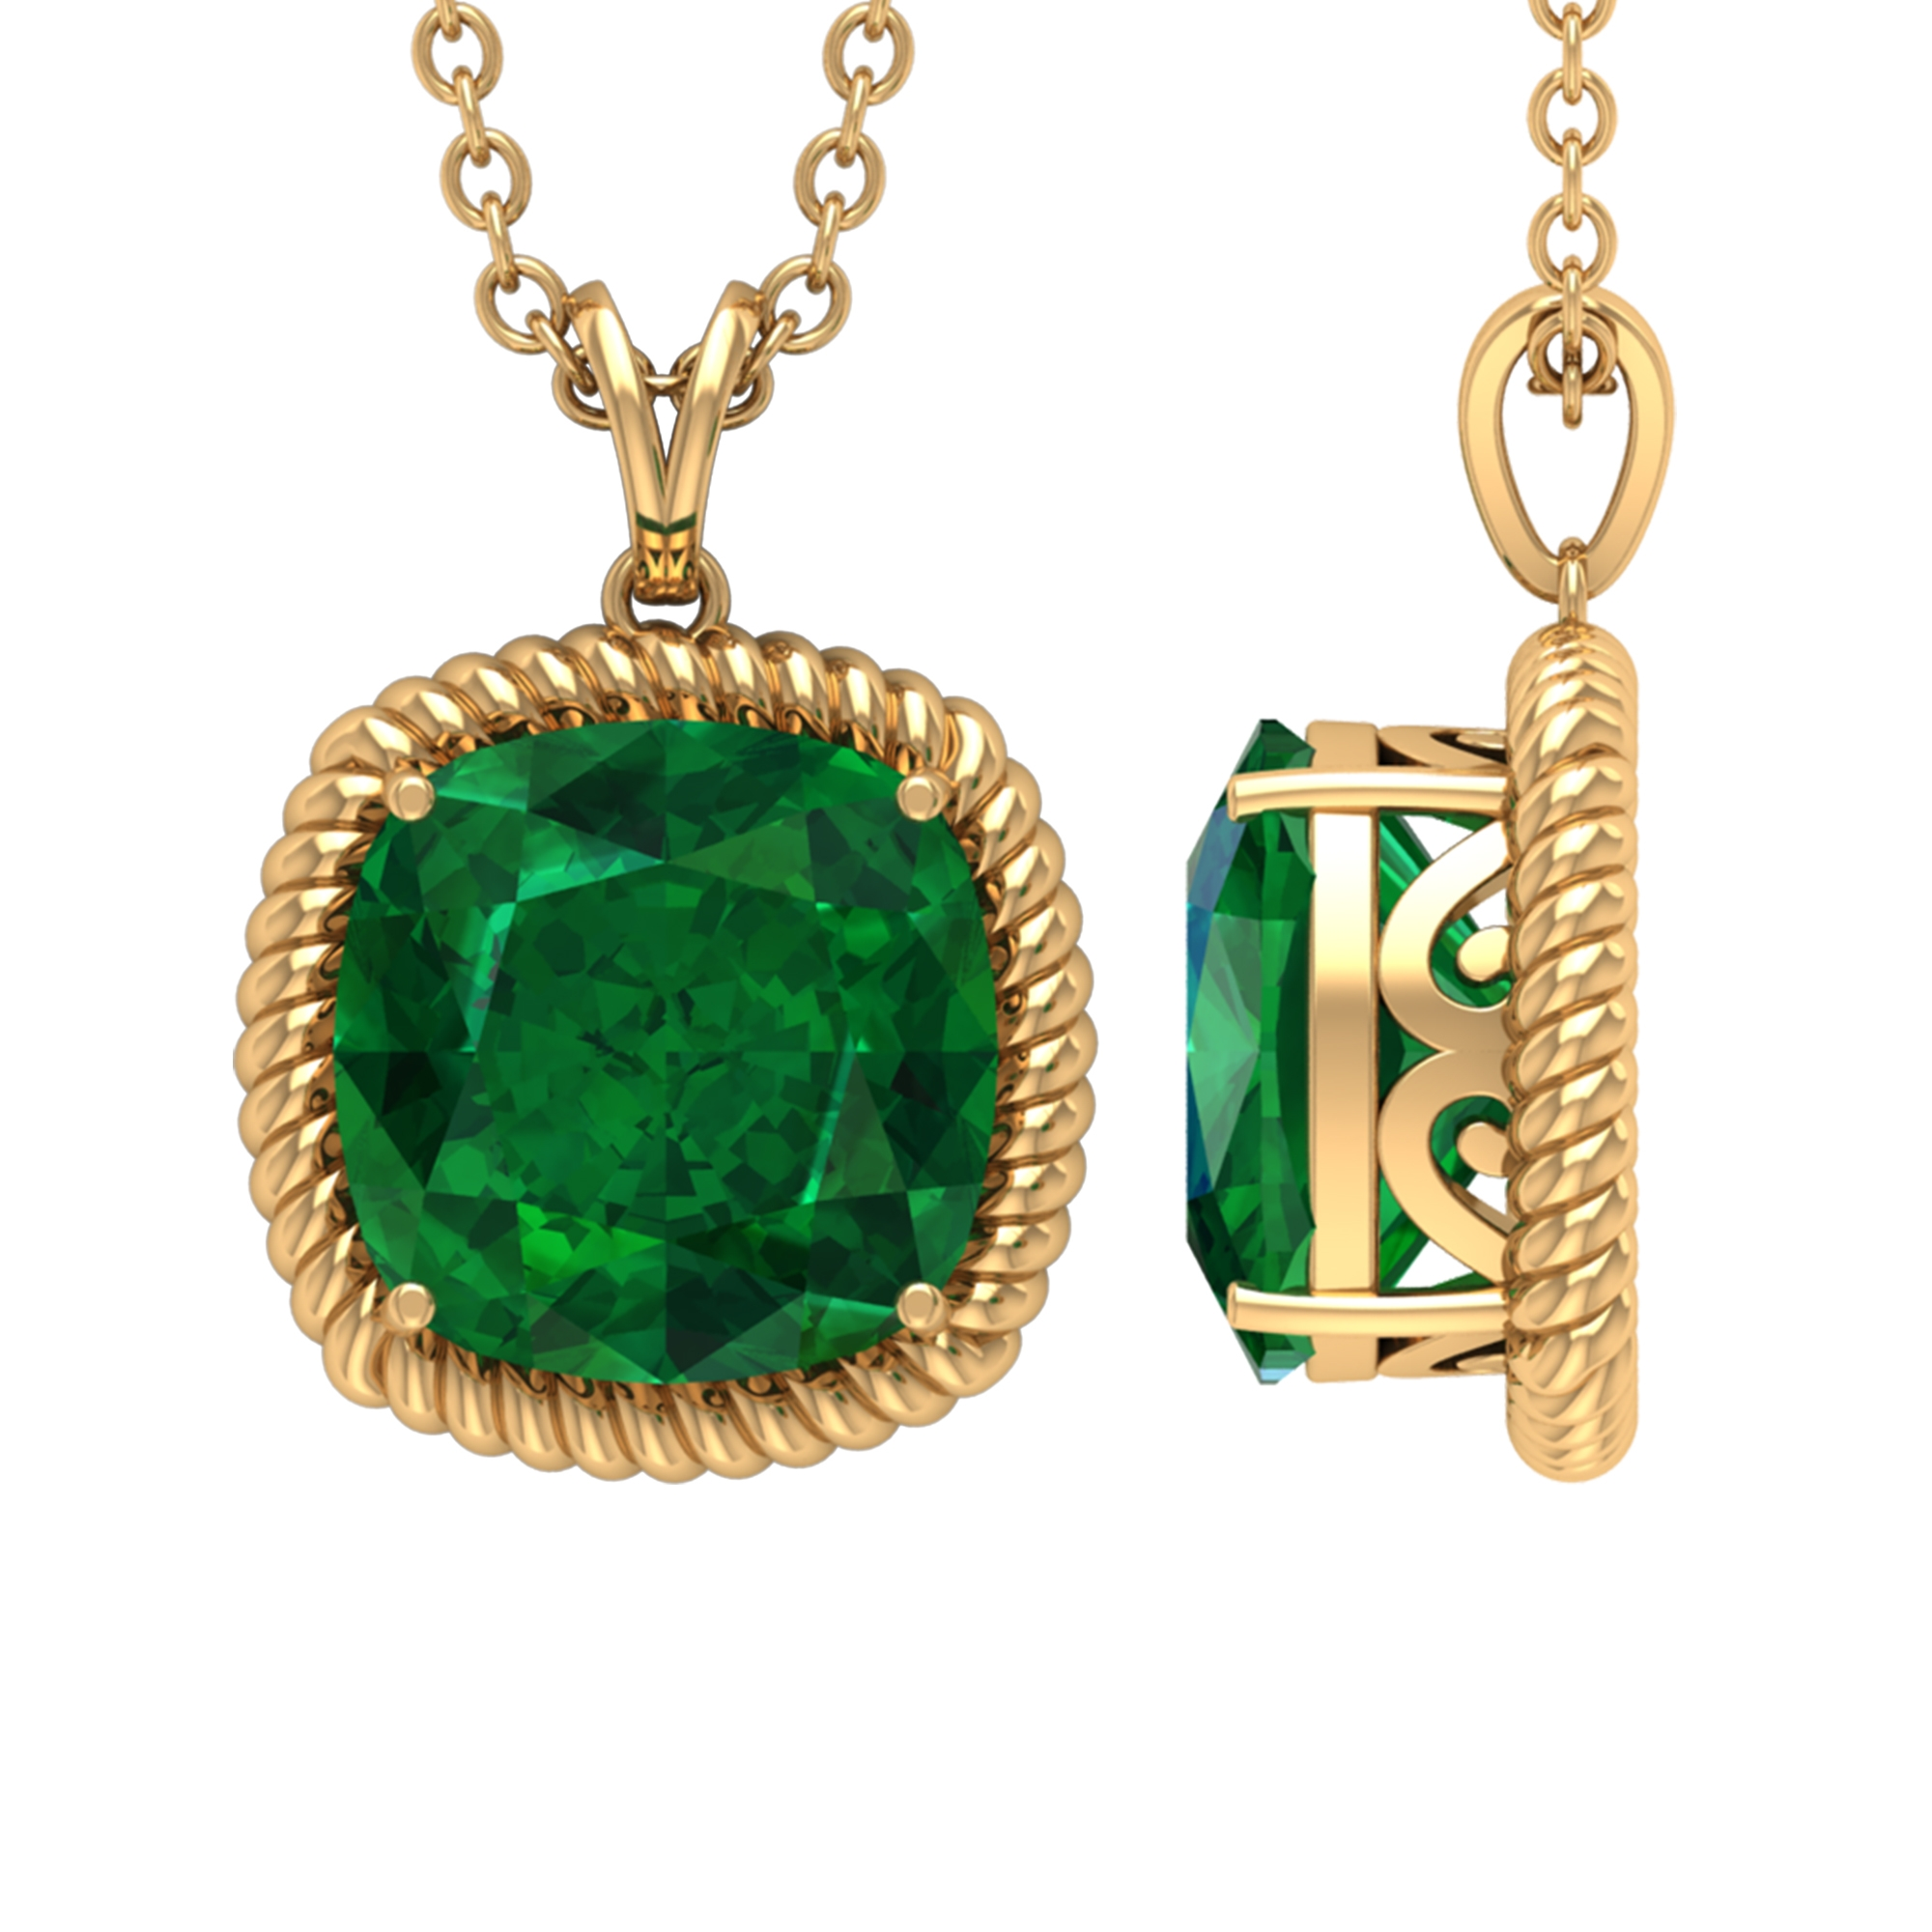 8 MM Cushion Cut Emerald Vintage Inspired Solitaire Pendant with Rabbit Ear Bail and Rope Frame